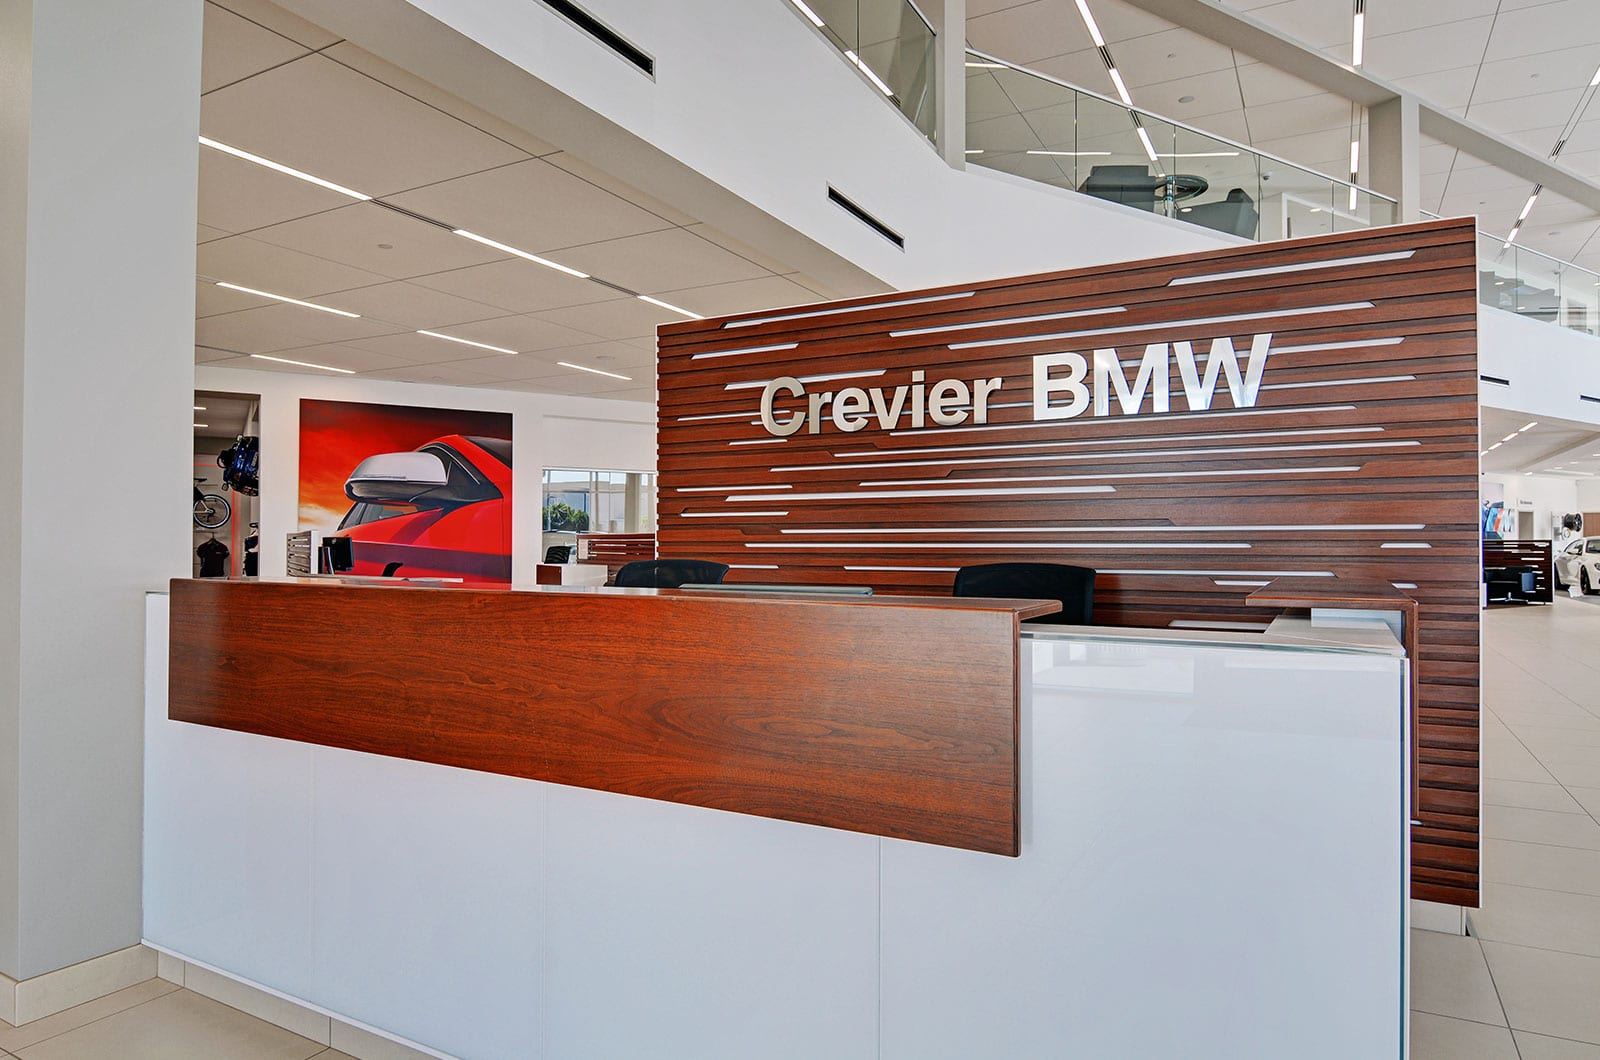 Crevier-BMW-Auto-Dealership-Auto Dealership-Virtual-Tours-Car-Dealership-Virtual-Tours-Aerial-Photography-Services